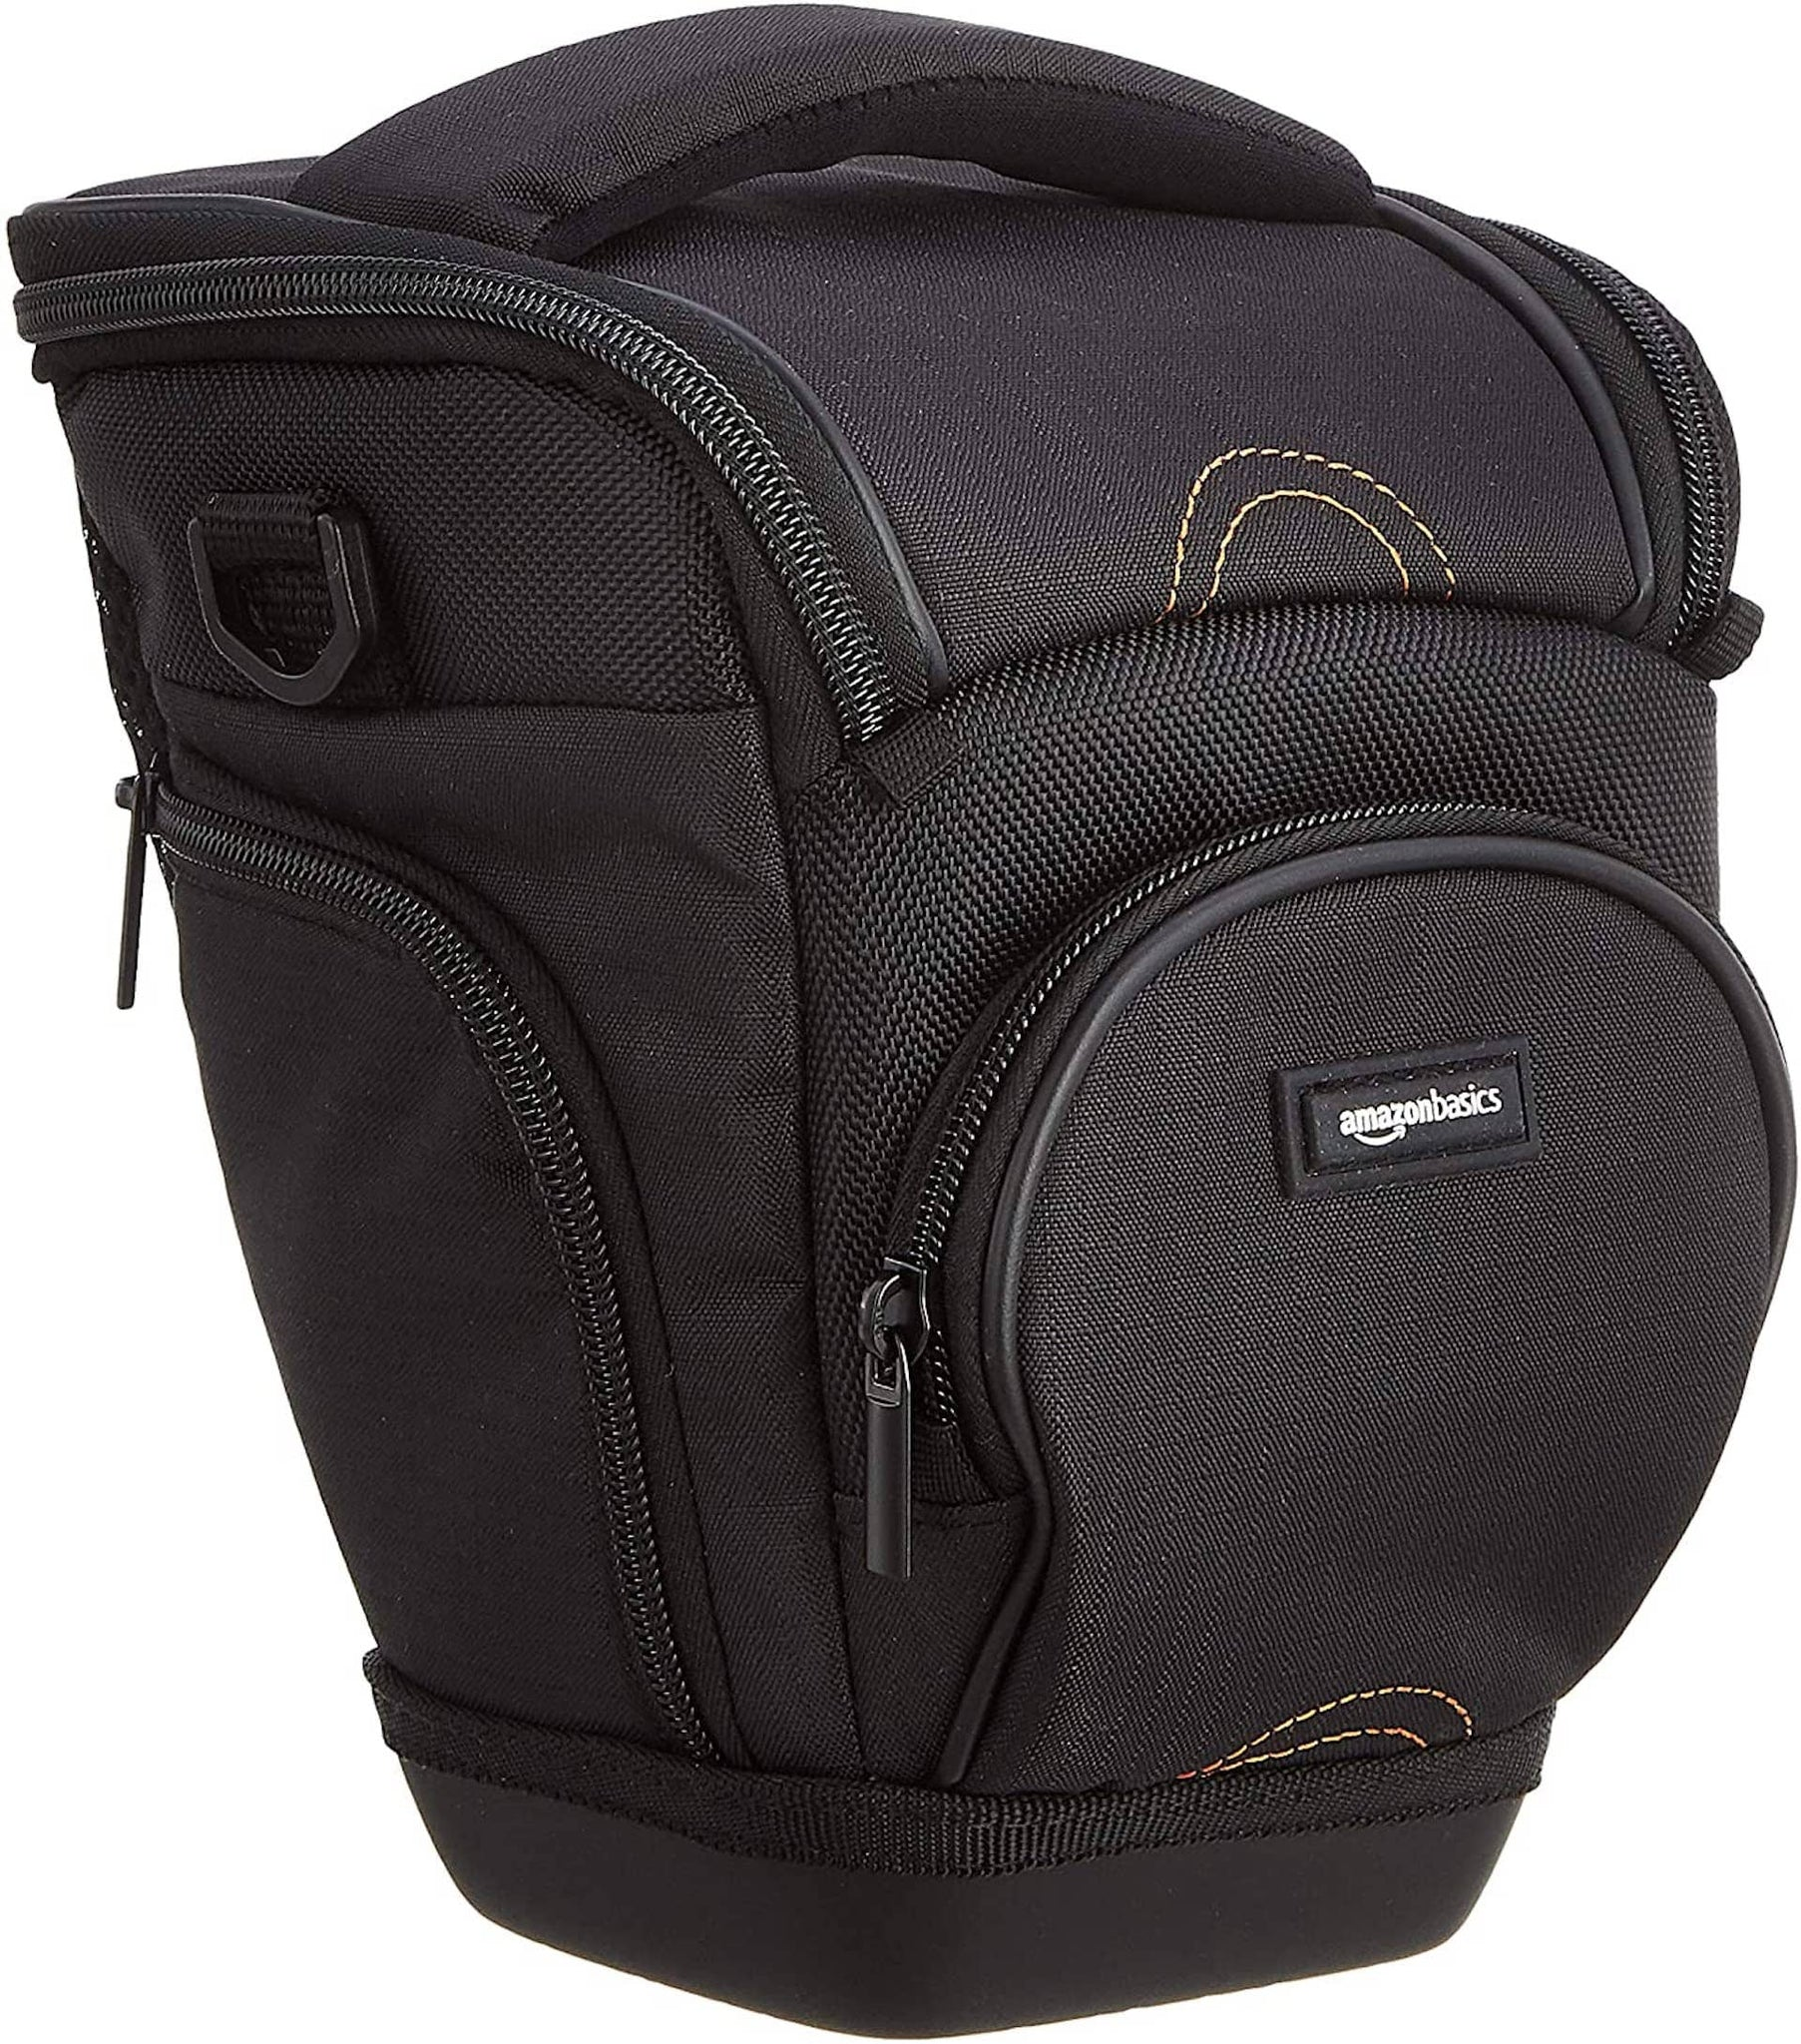 Best Photo Gifts for Photographers - Ideas Photographer Lovers - Toploader Camera Bag